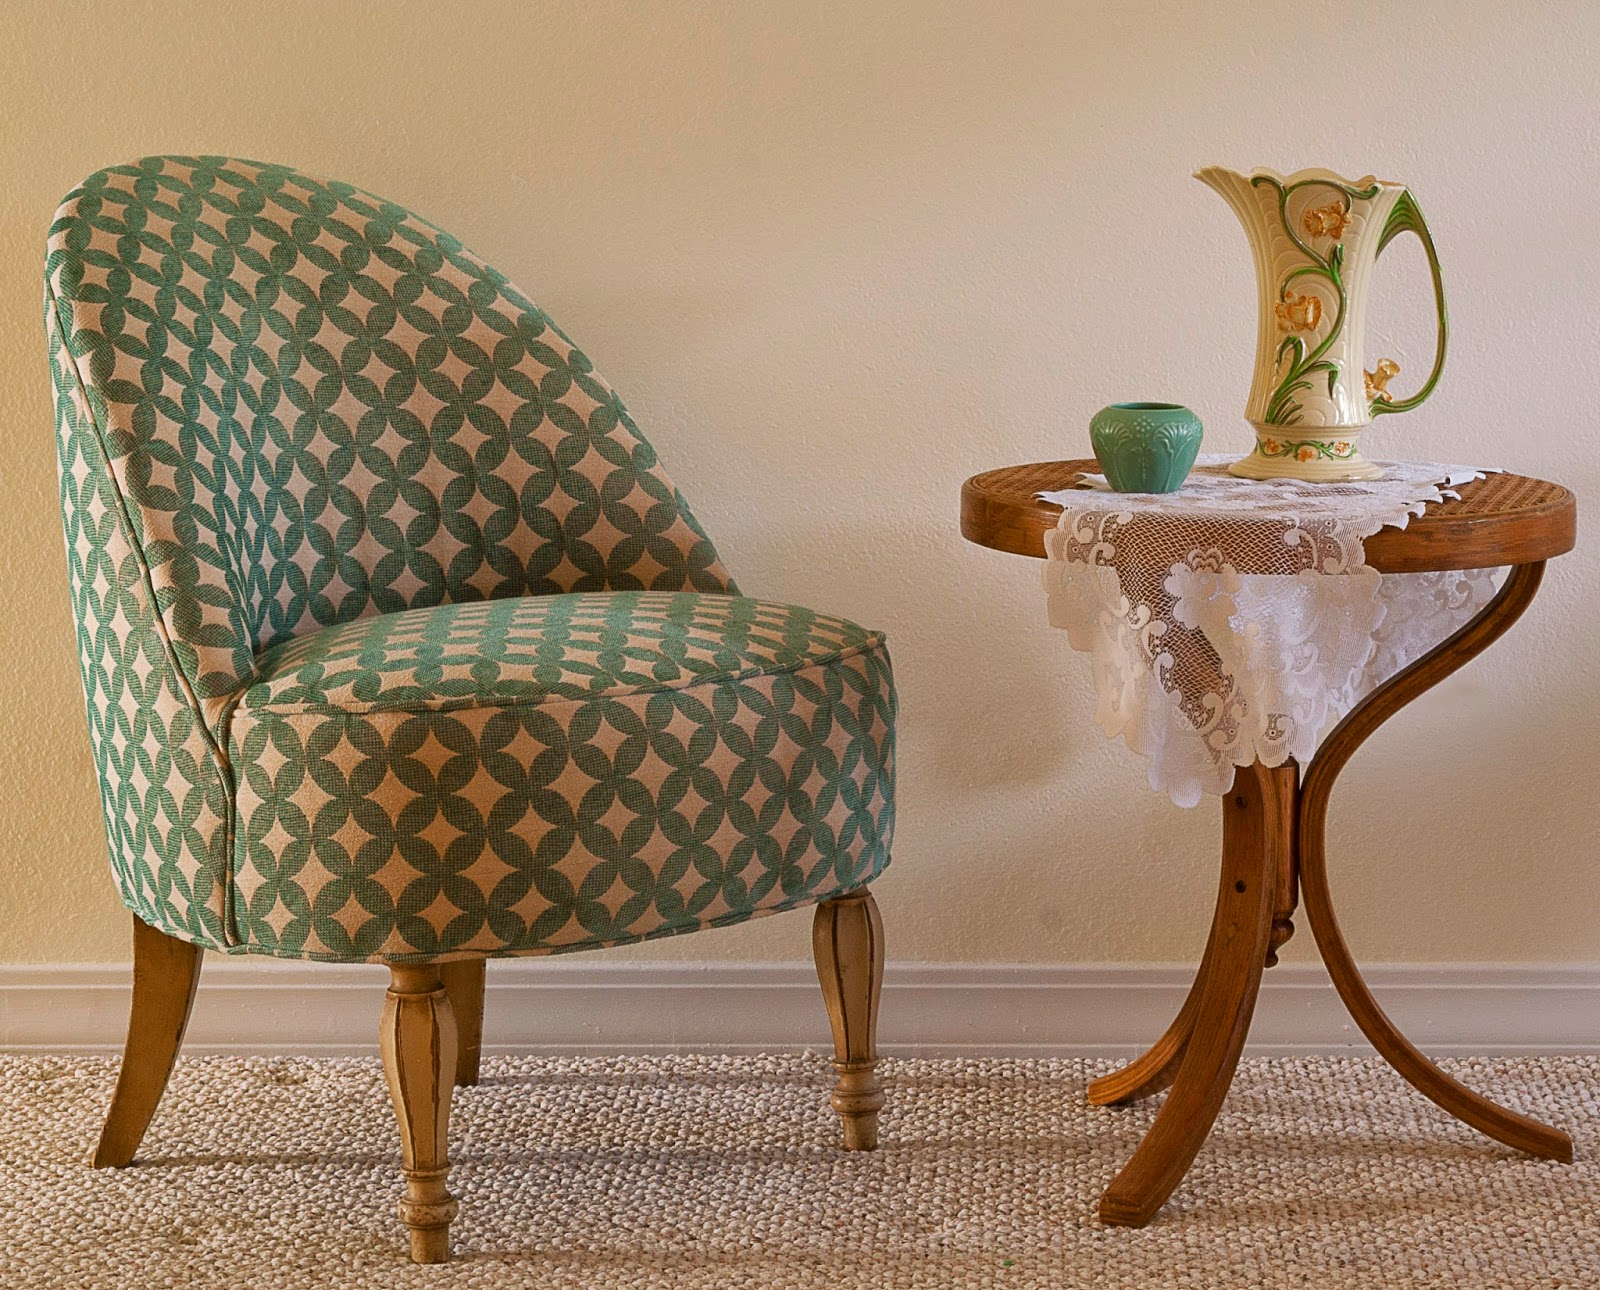 8 Furniture Thrifting Tips